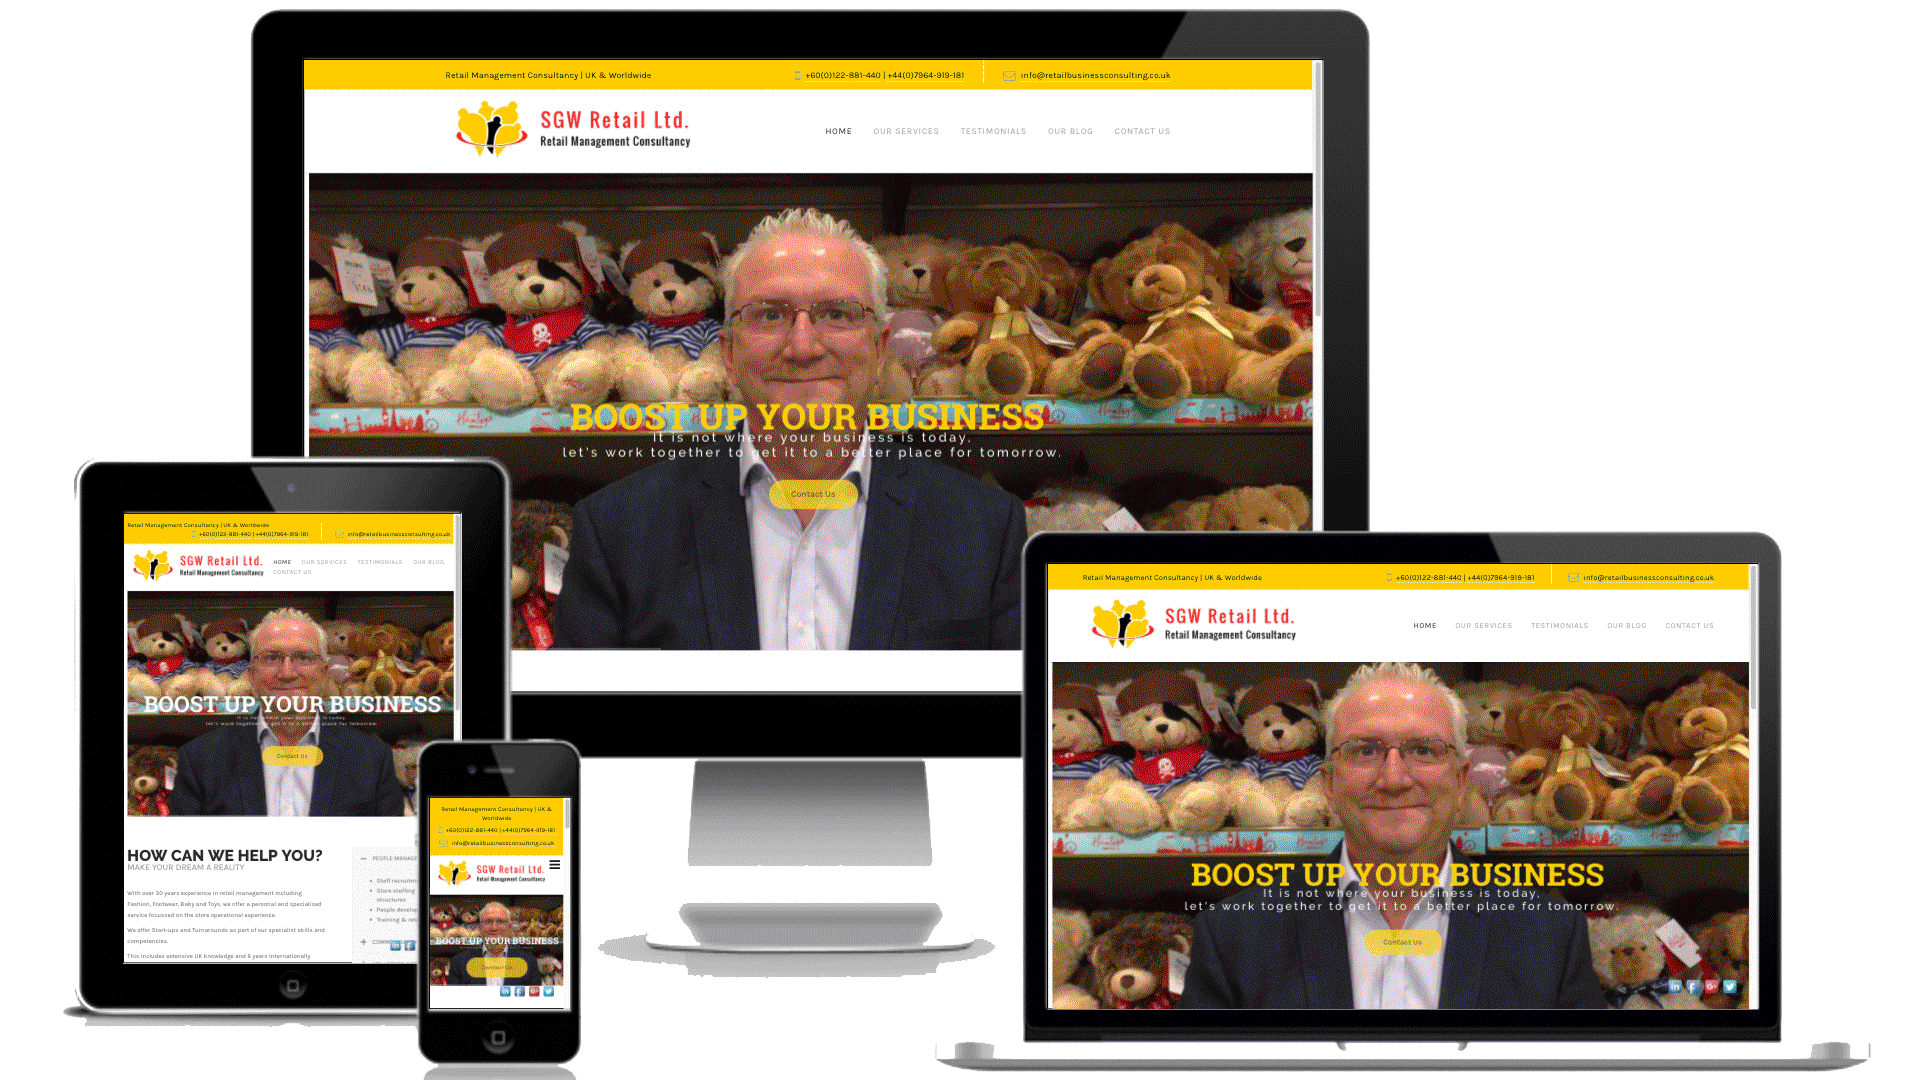 web-design-ashford-1920x1080-sgw-retail-management-consultancy-02